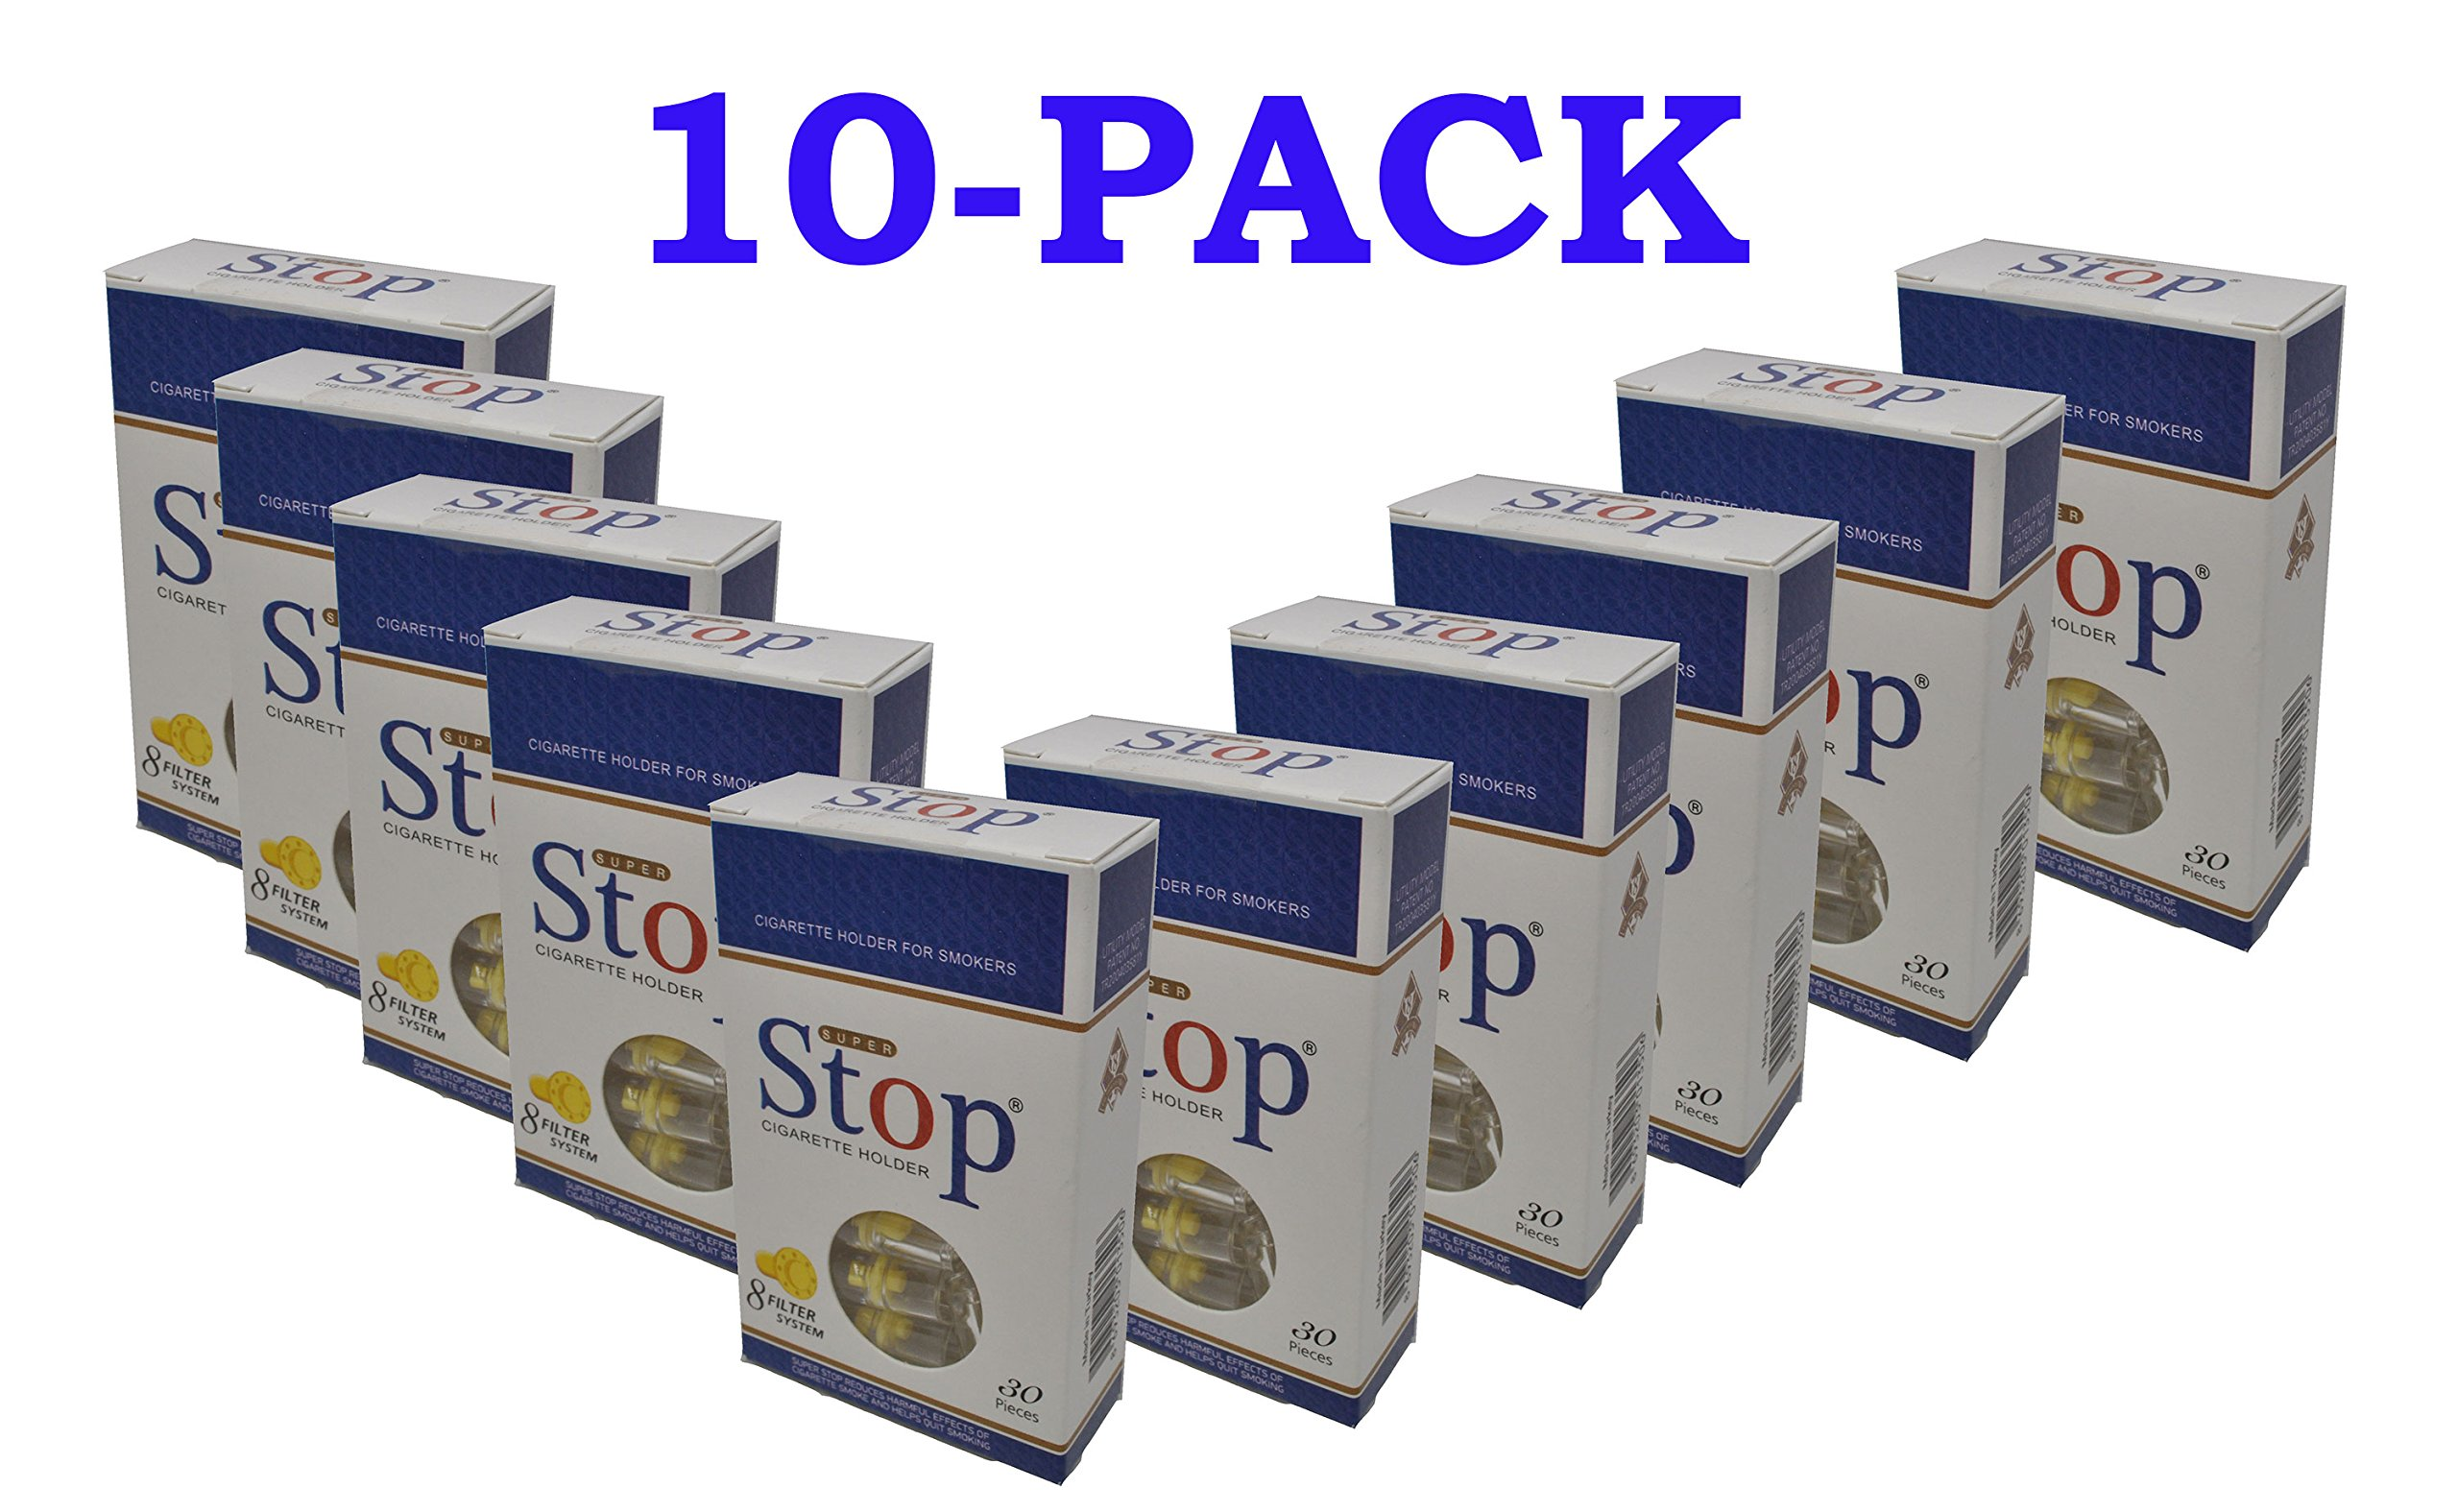 New and Improved Super Stop Disposable Cigarette Filters - 10 Packs (Blue)